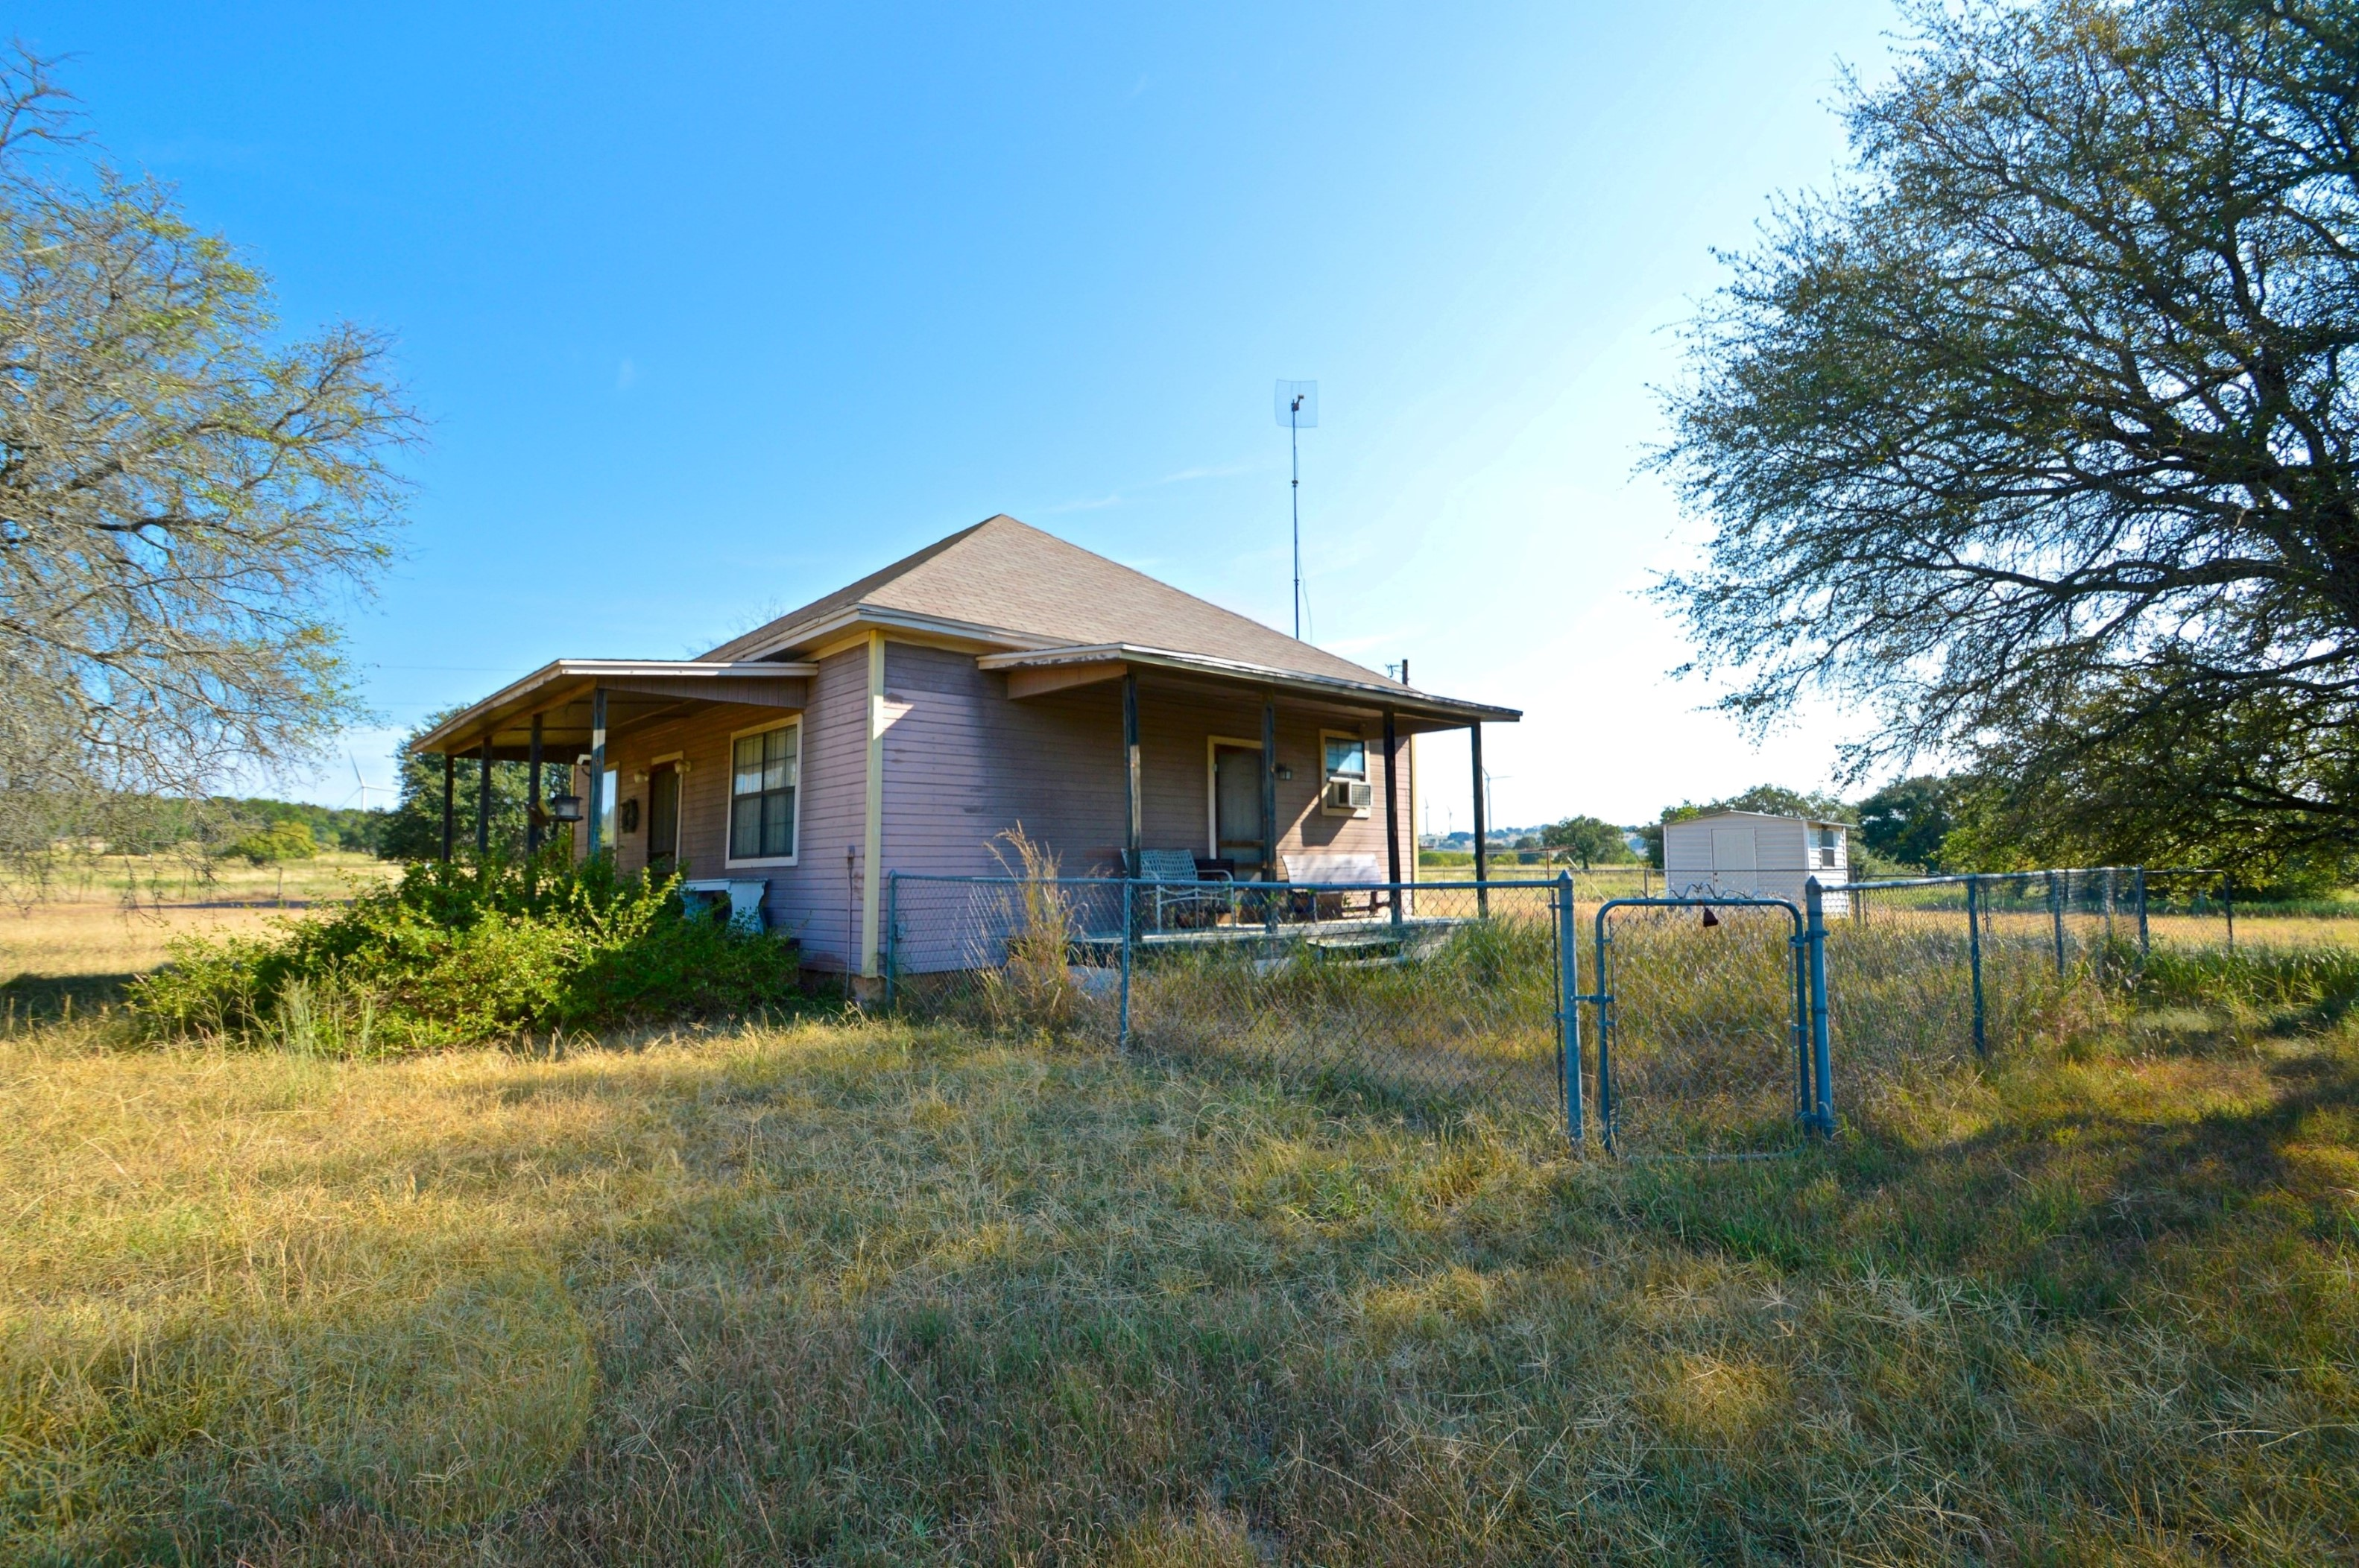 Home for sale: 853 County Road 315, Lometa, Tx